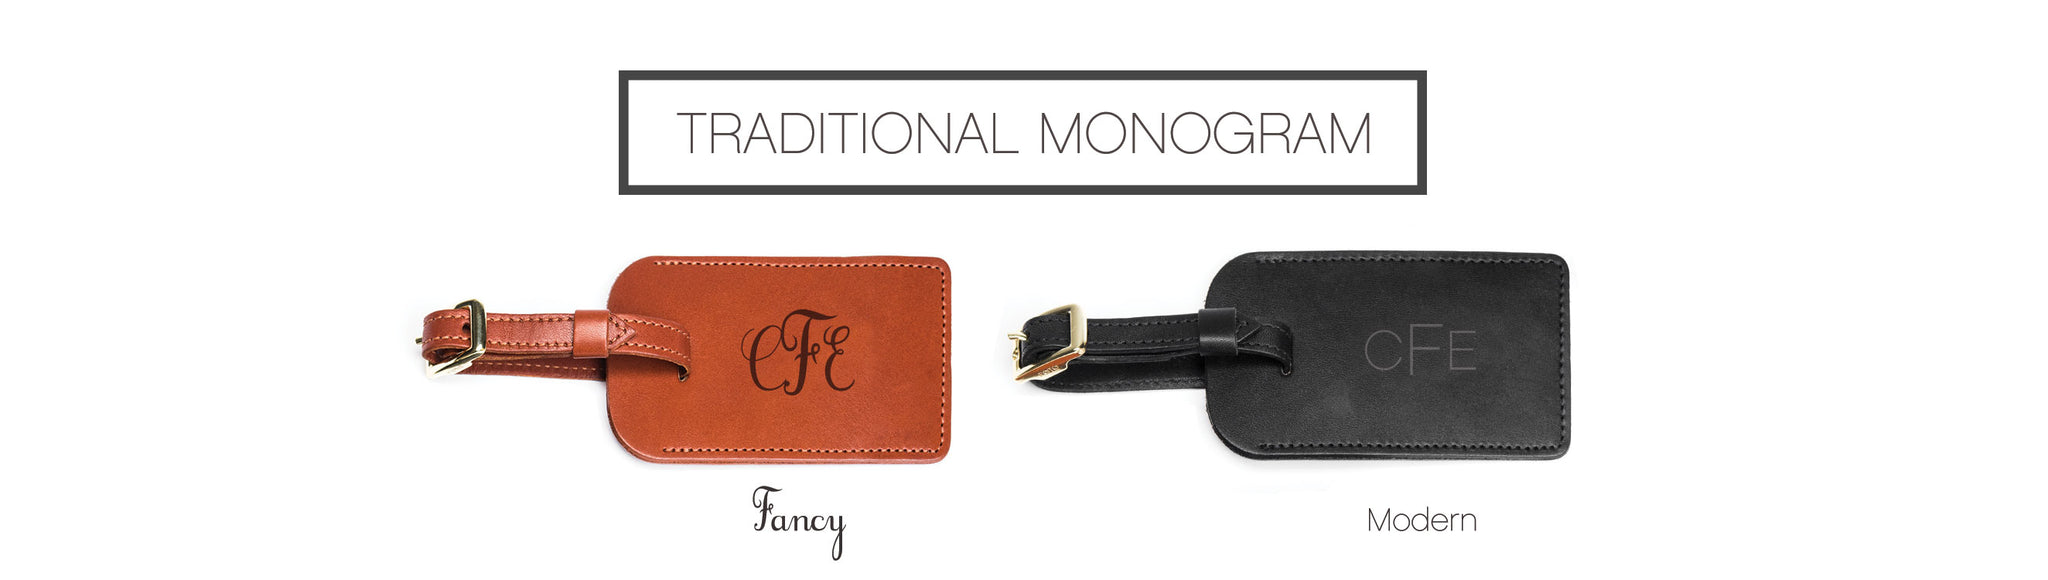 Traditional Monogram - Luggage Tag